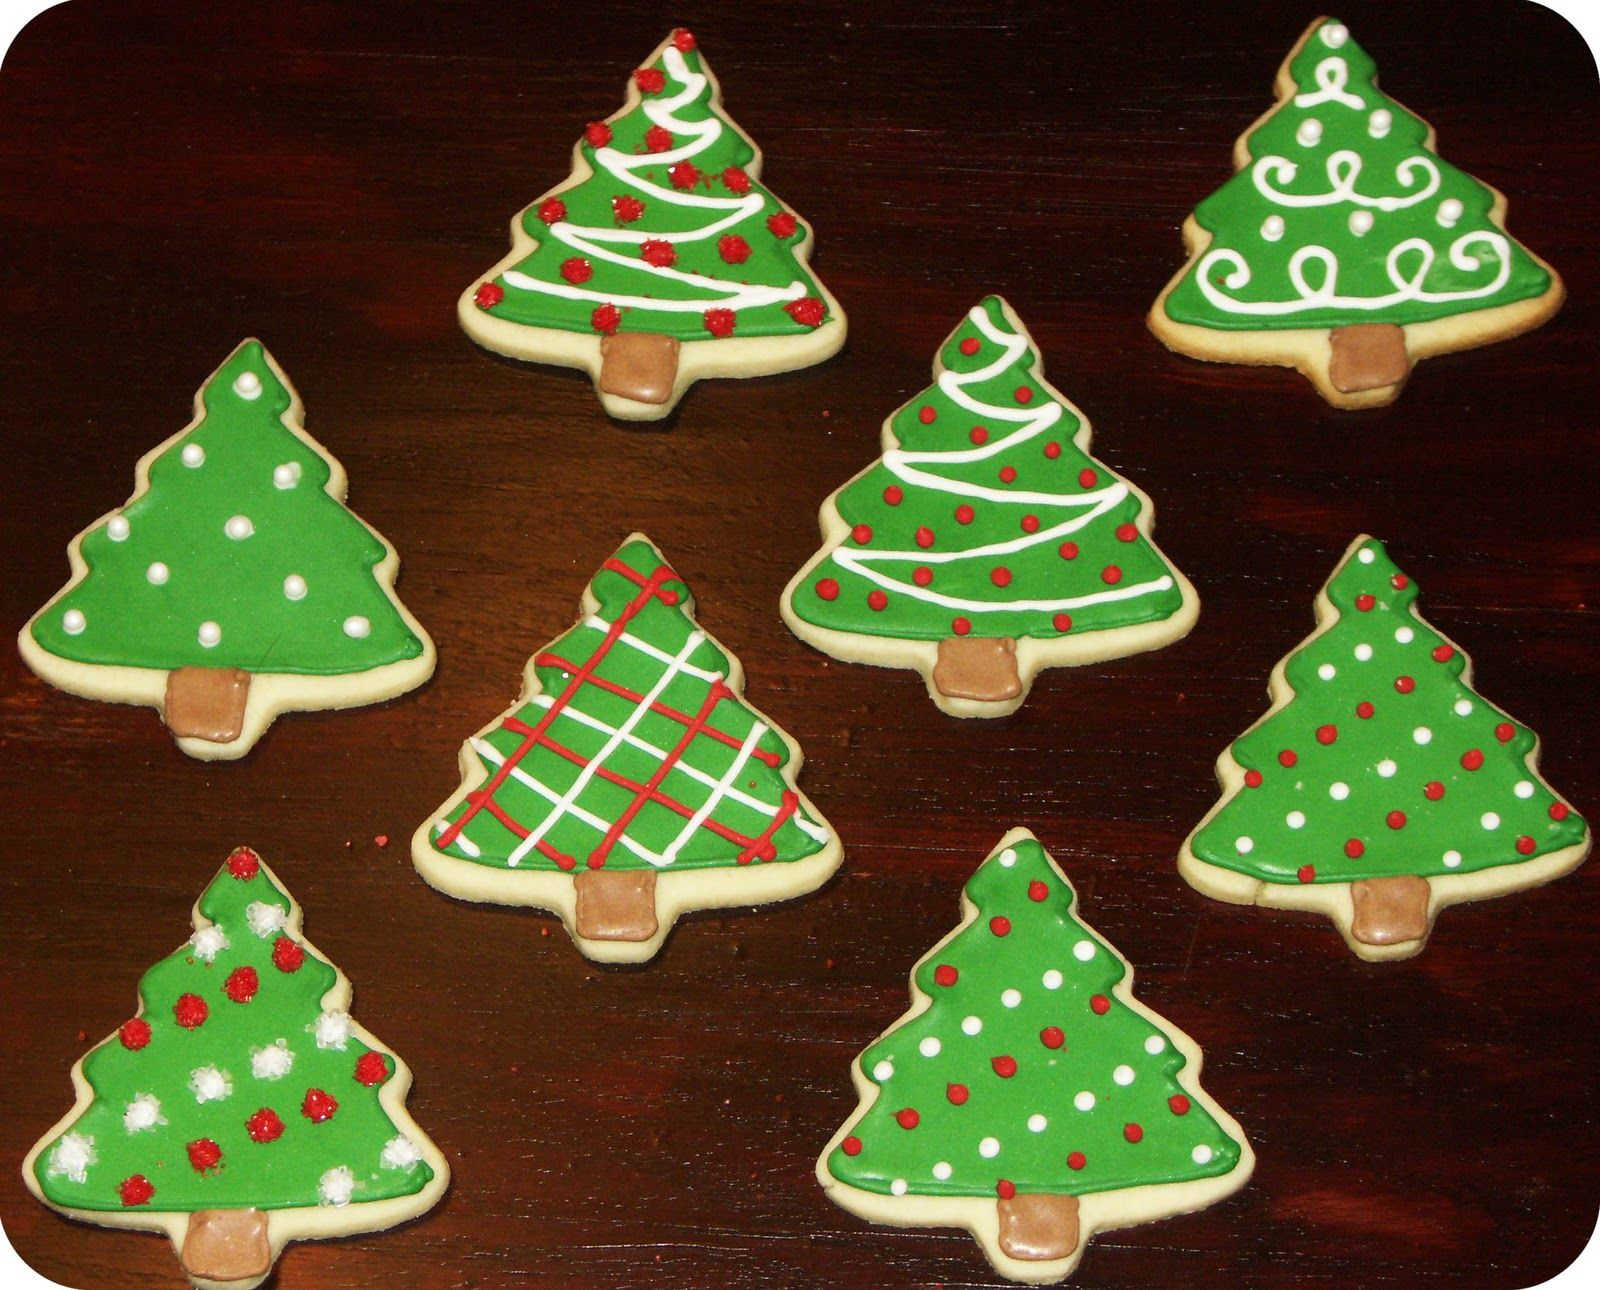 cookie decorating ideas if you dont see the design youre looking forjust ask